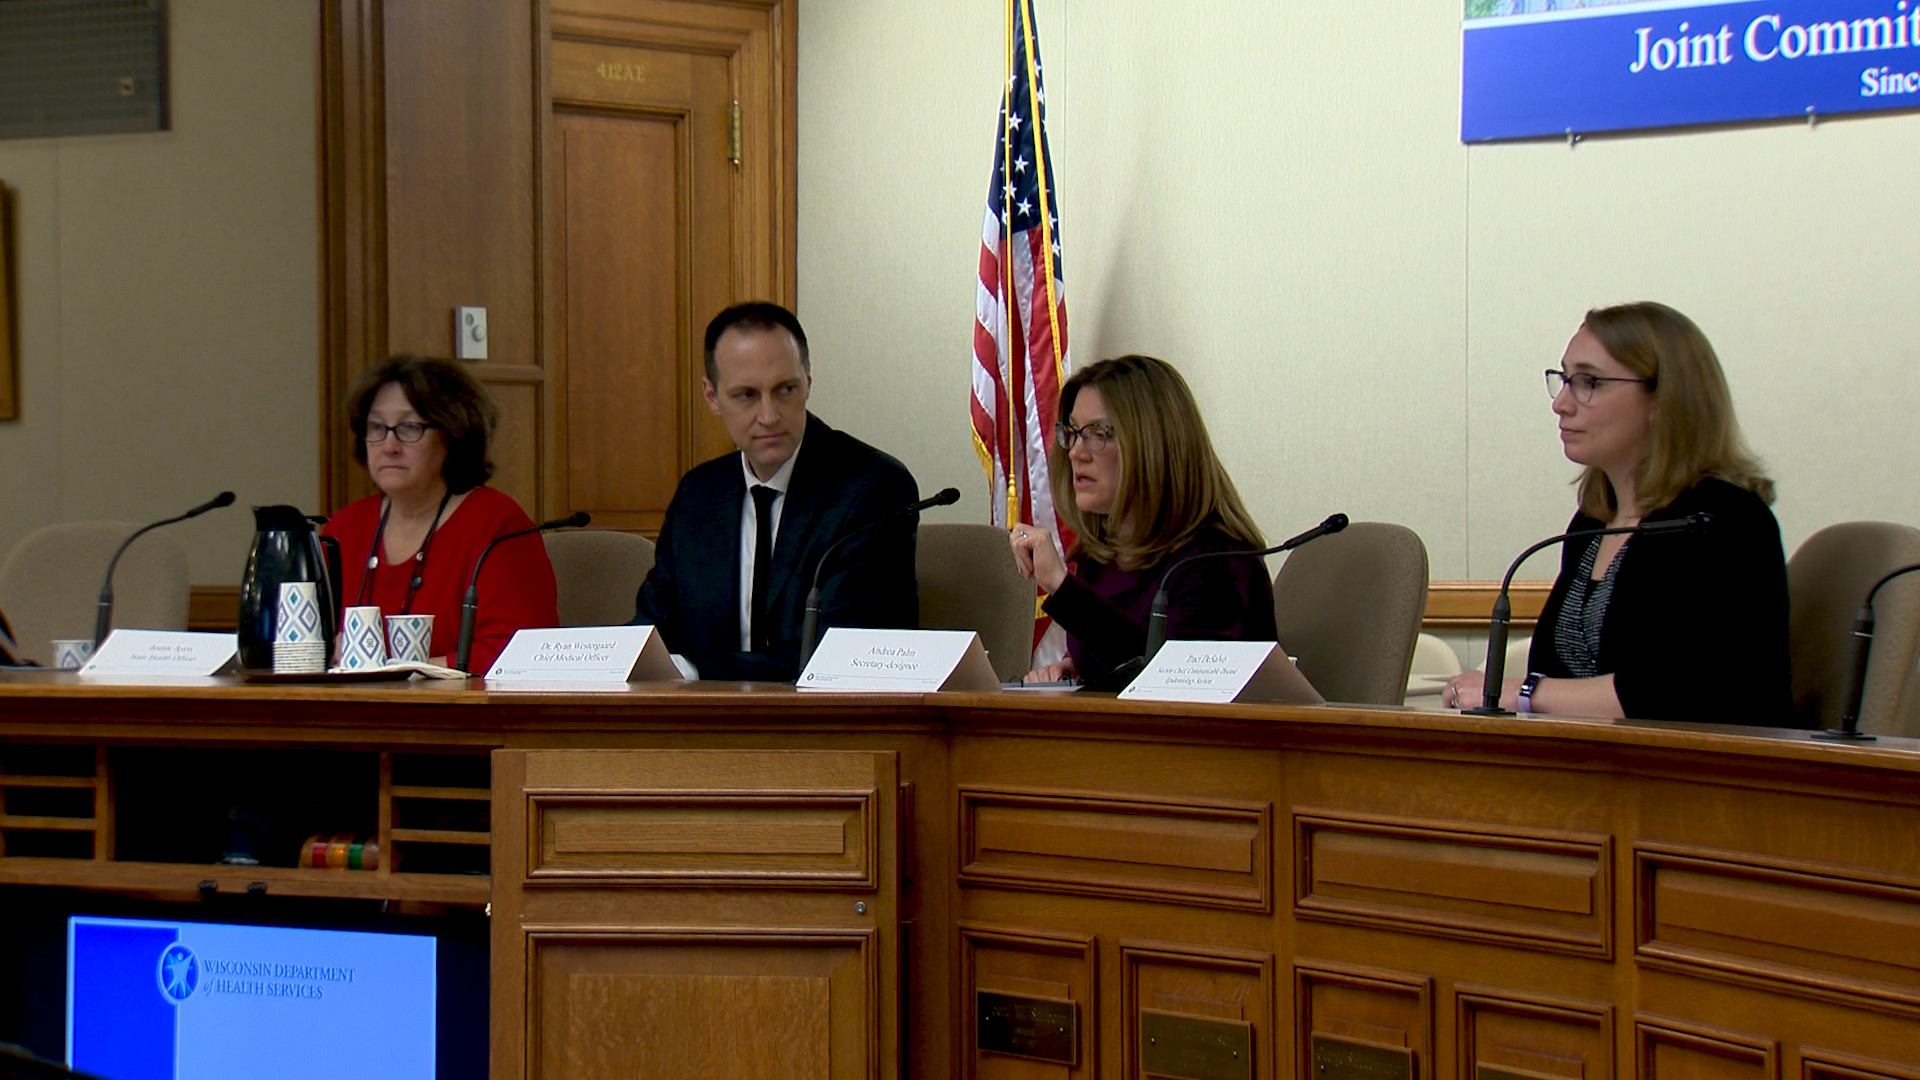 Department of Health Services Secretary Designee-Andrea Palm and department staff brief legislators on the state's response to the novel coronavirus March 4, 2020.